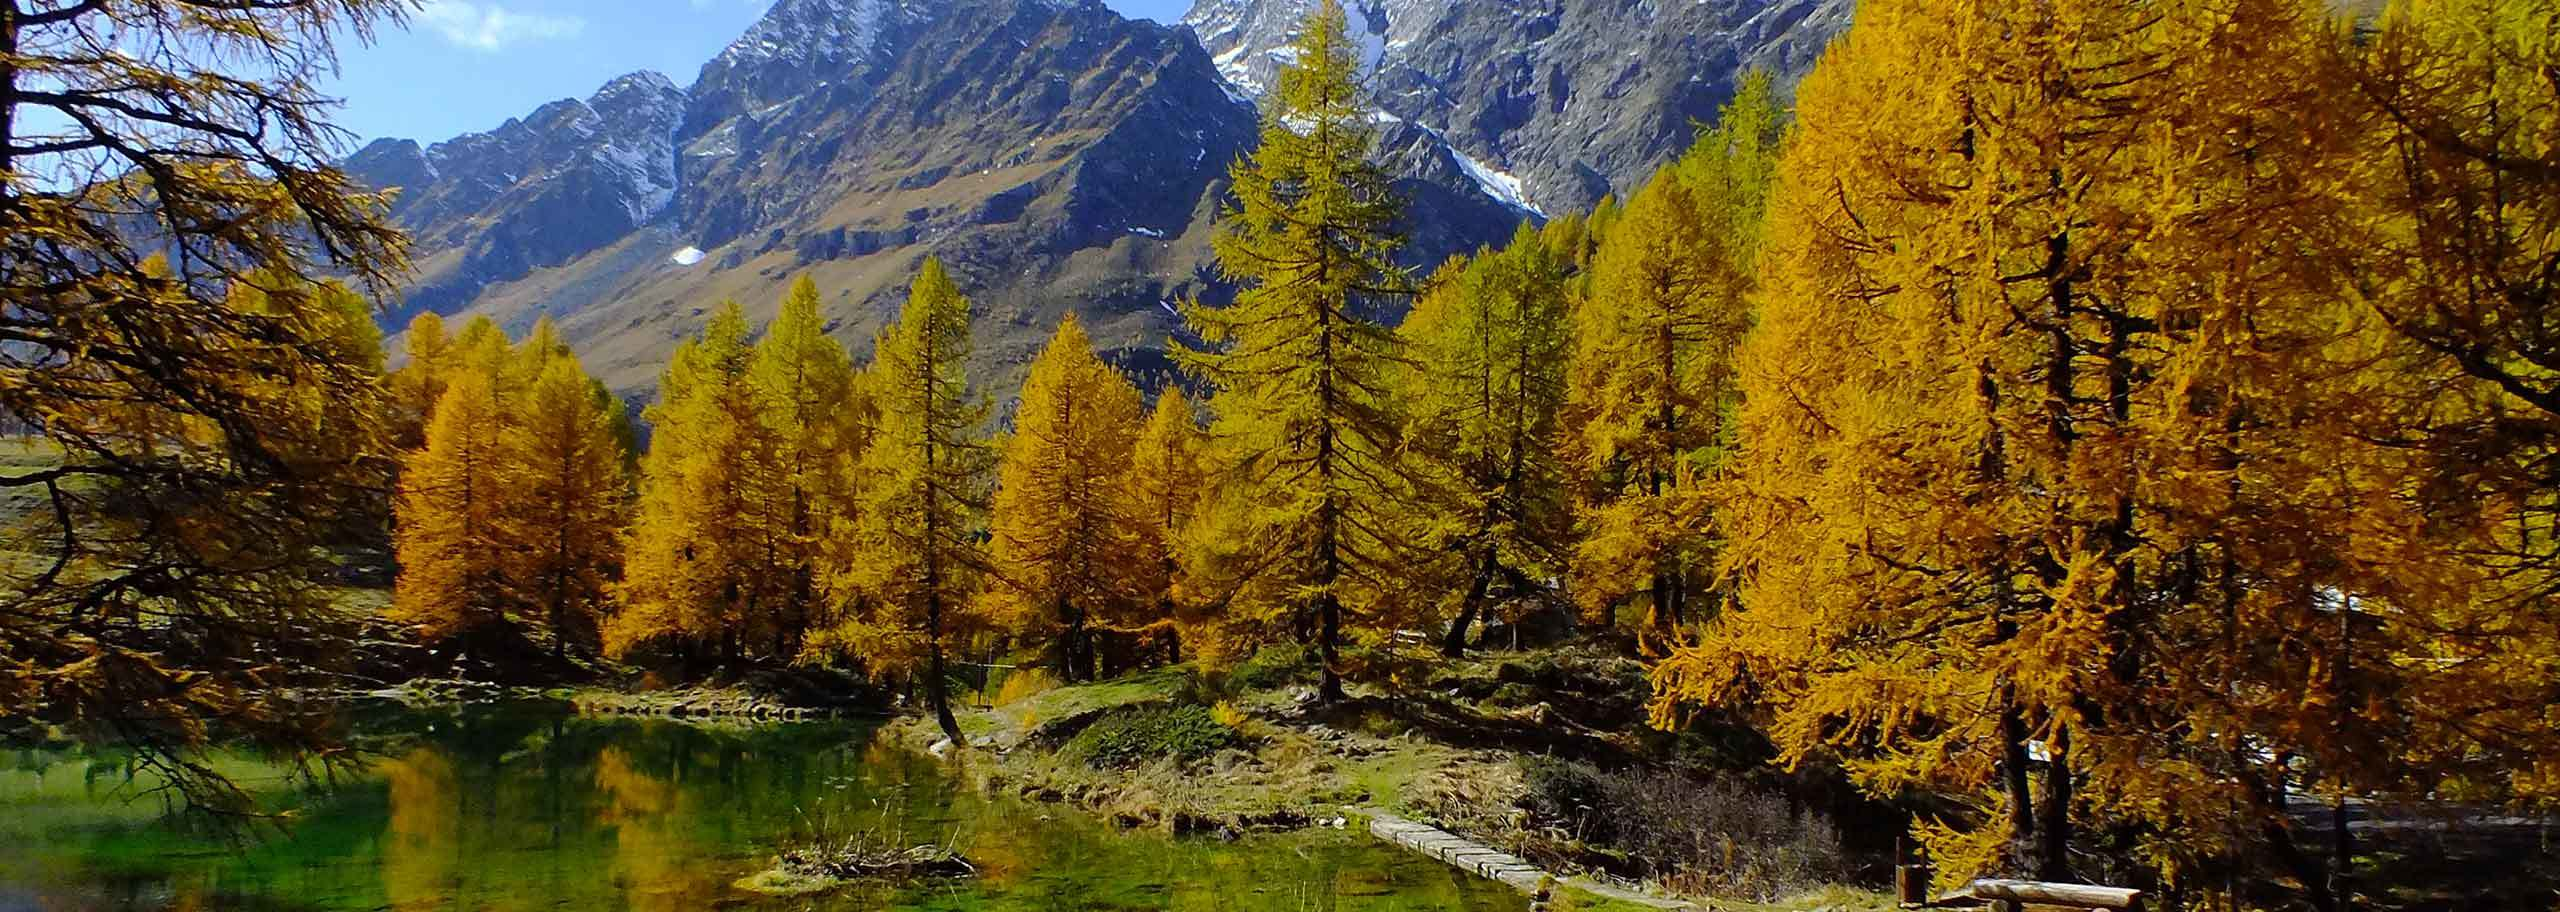 Trekking in Alagna Valsesia with a Mountain Guide